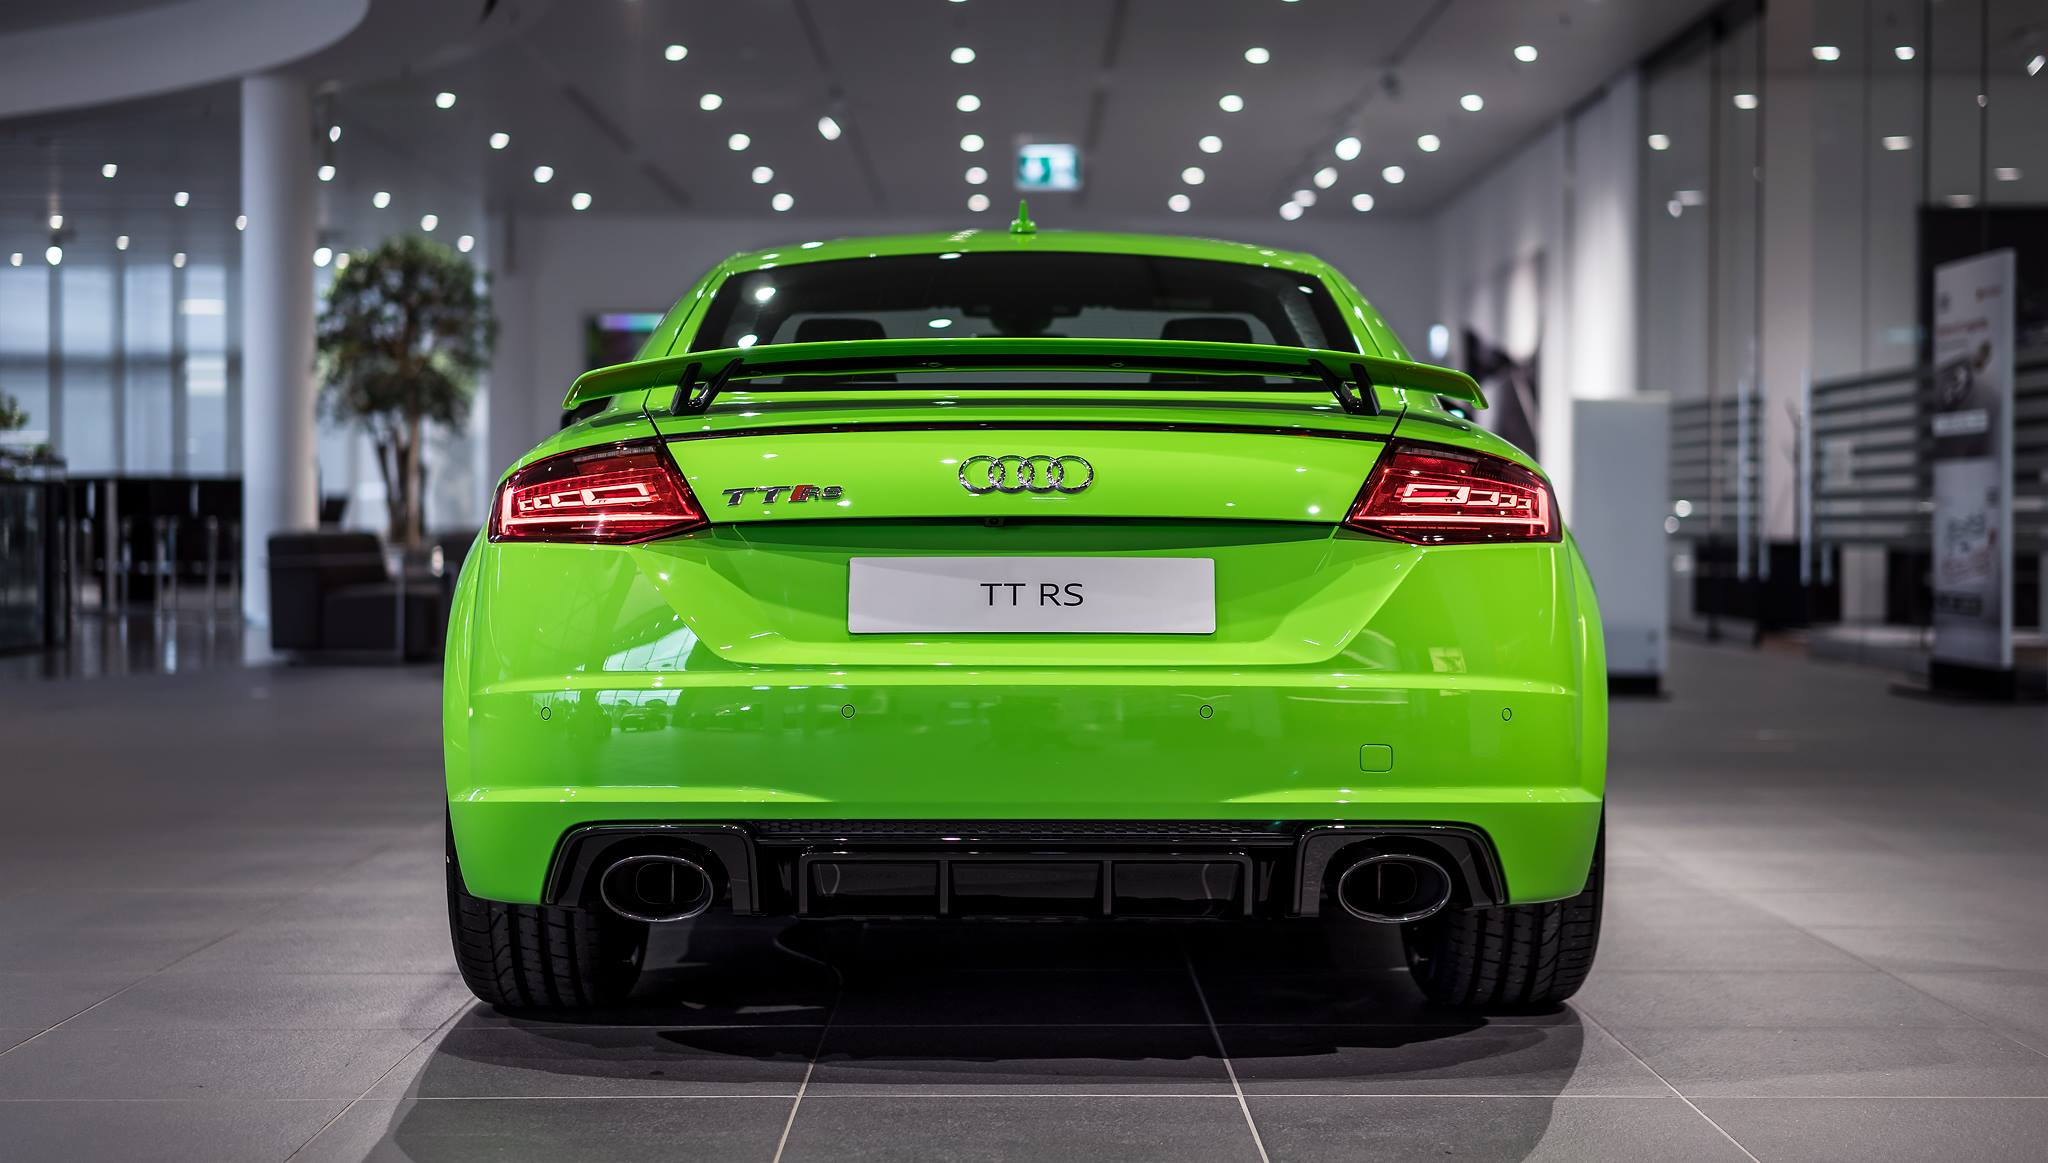 Car Tuning Wallpaper Hd 2017 Audi Tt Rs In Lime Green Looks Like A Tiny Exotic Car